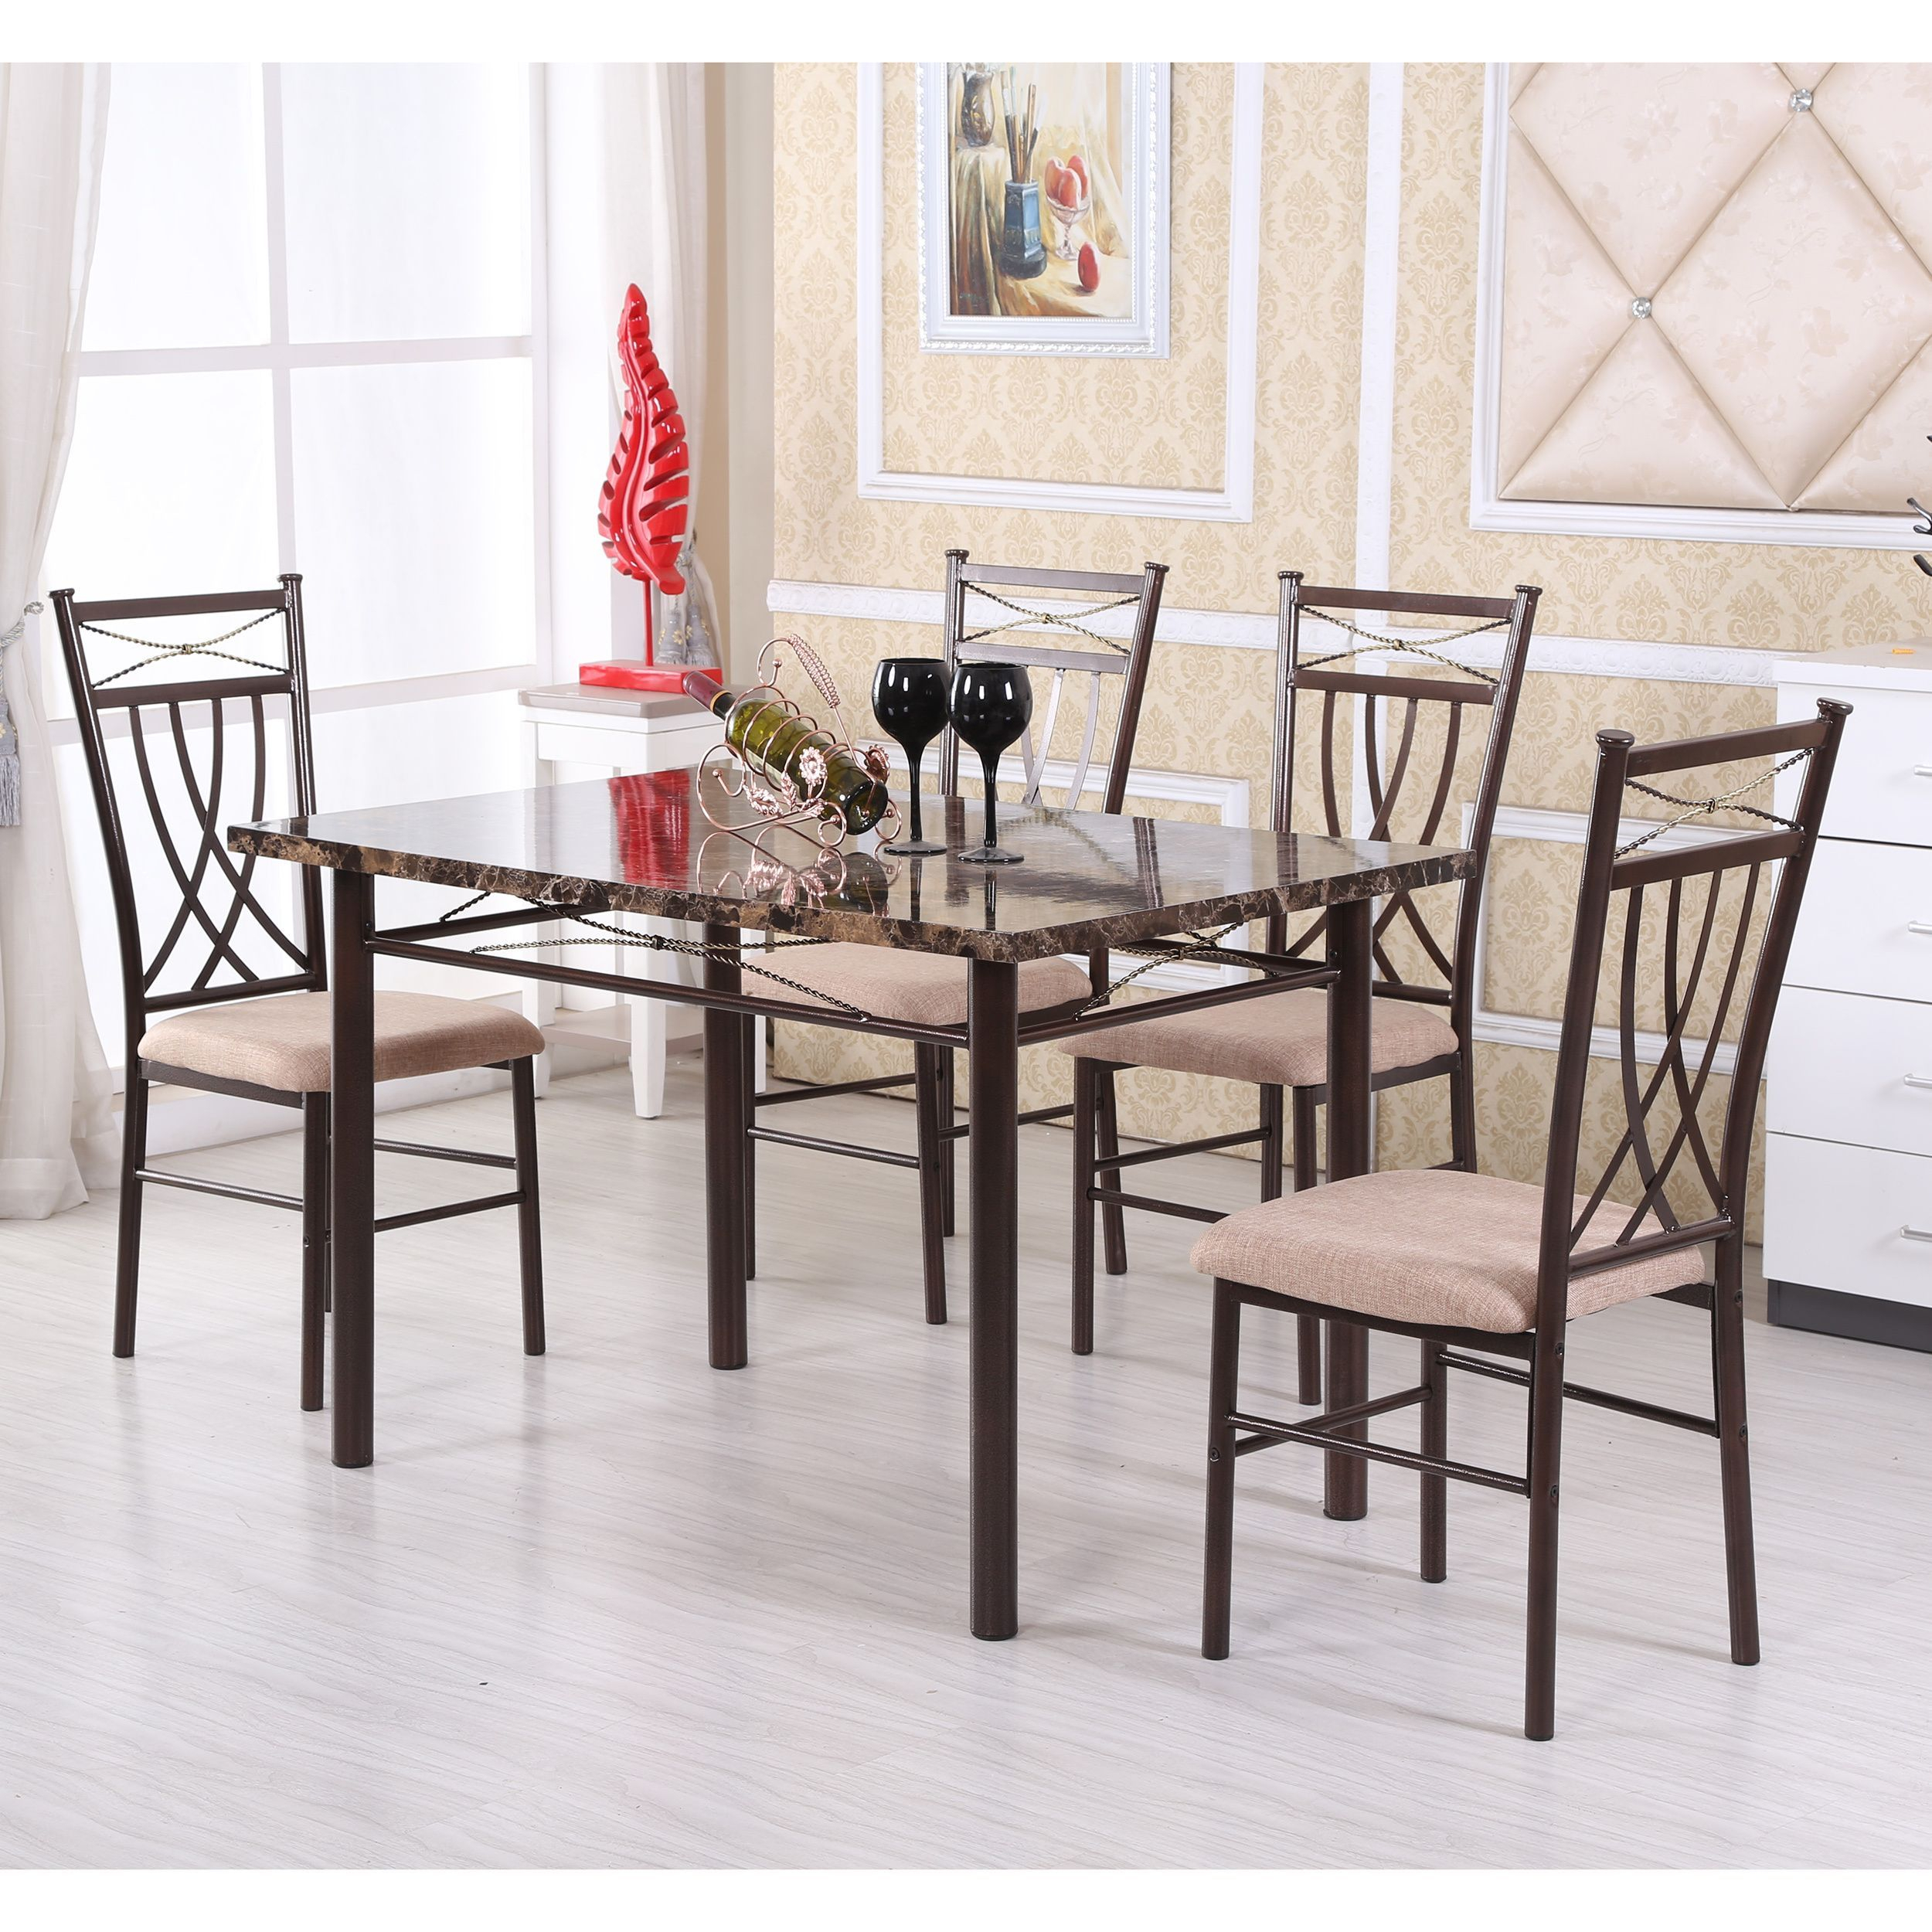 Update Your Dining Room With This Classic Five Piece Dining Set Pertaining To 2017 Kieffer 5 Piece Dining Sets (View 4 of 20)